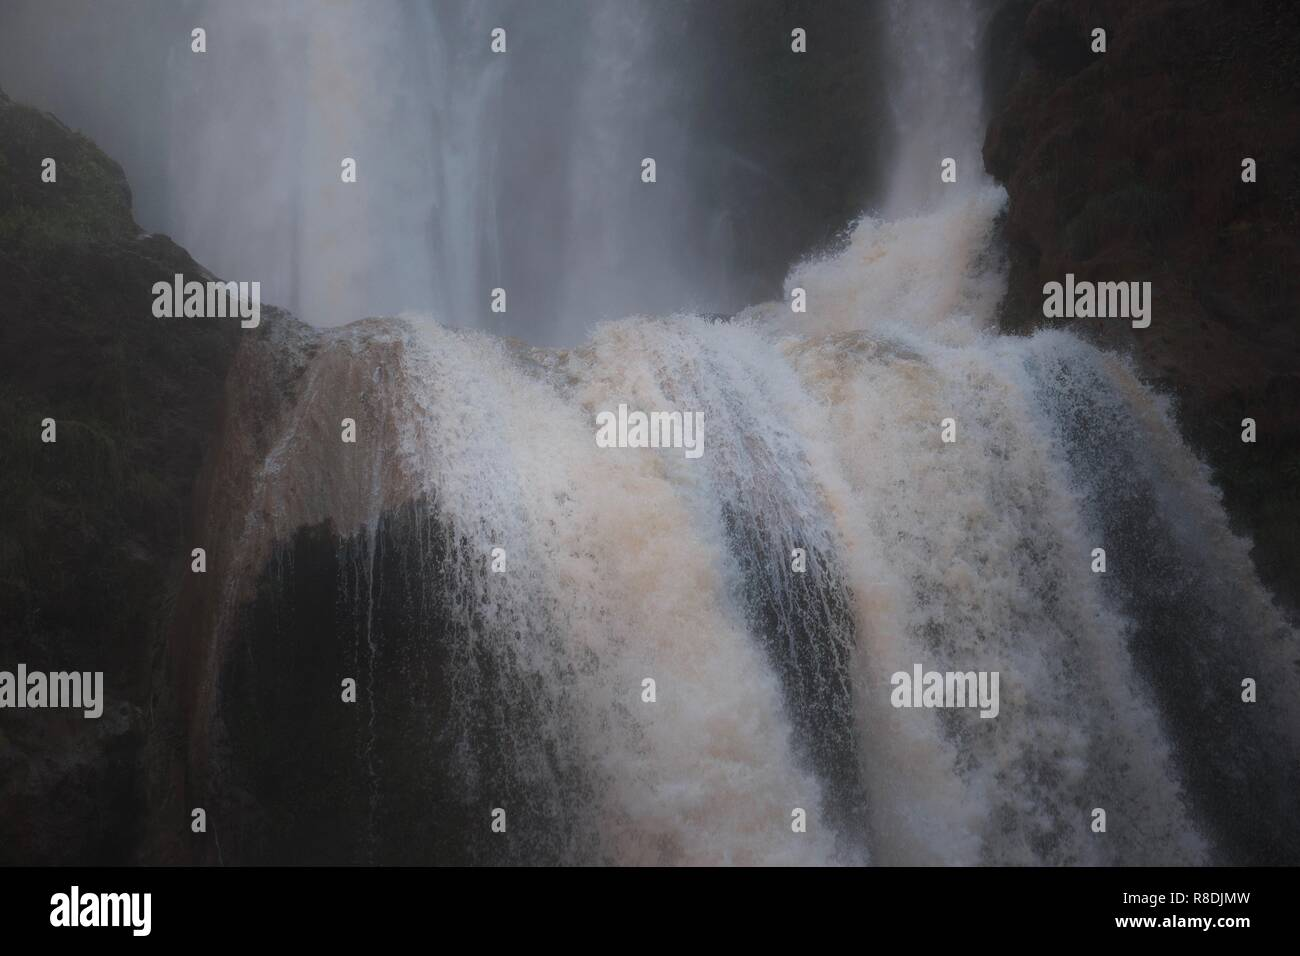 Close up of violently foaming water plunging off the edge of a dramatic waterfall, the top half of which is in the background - Stock Image